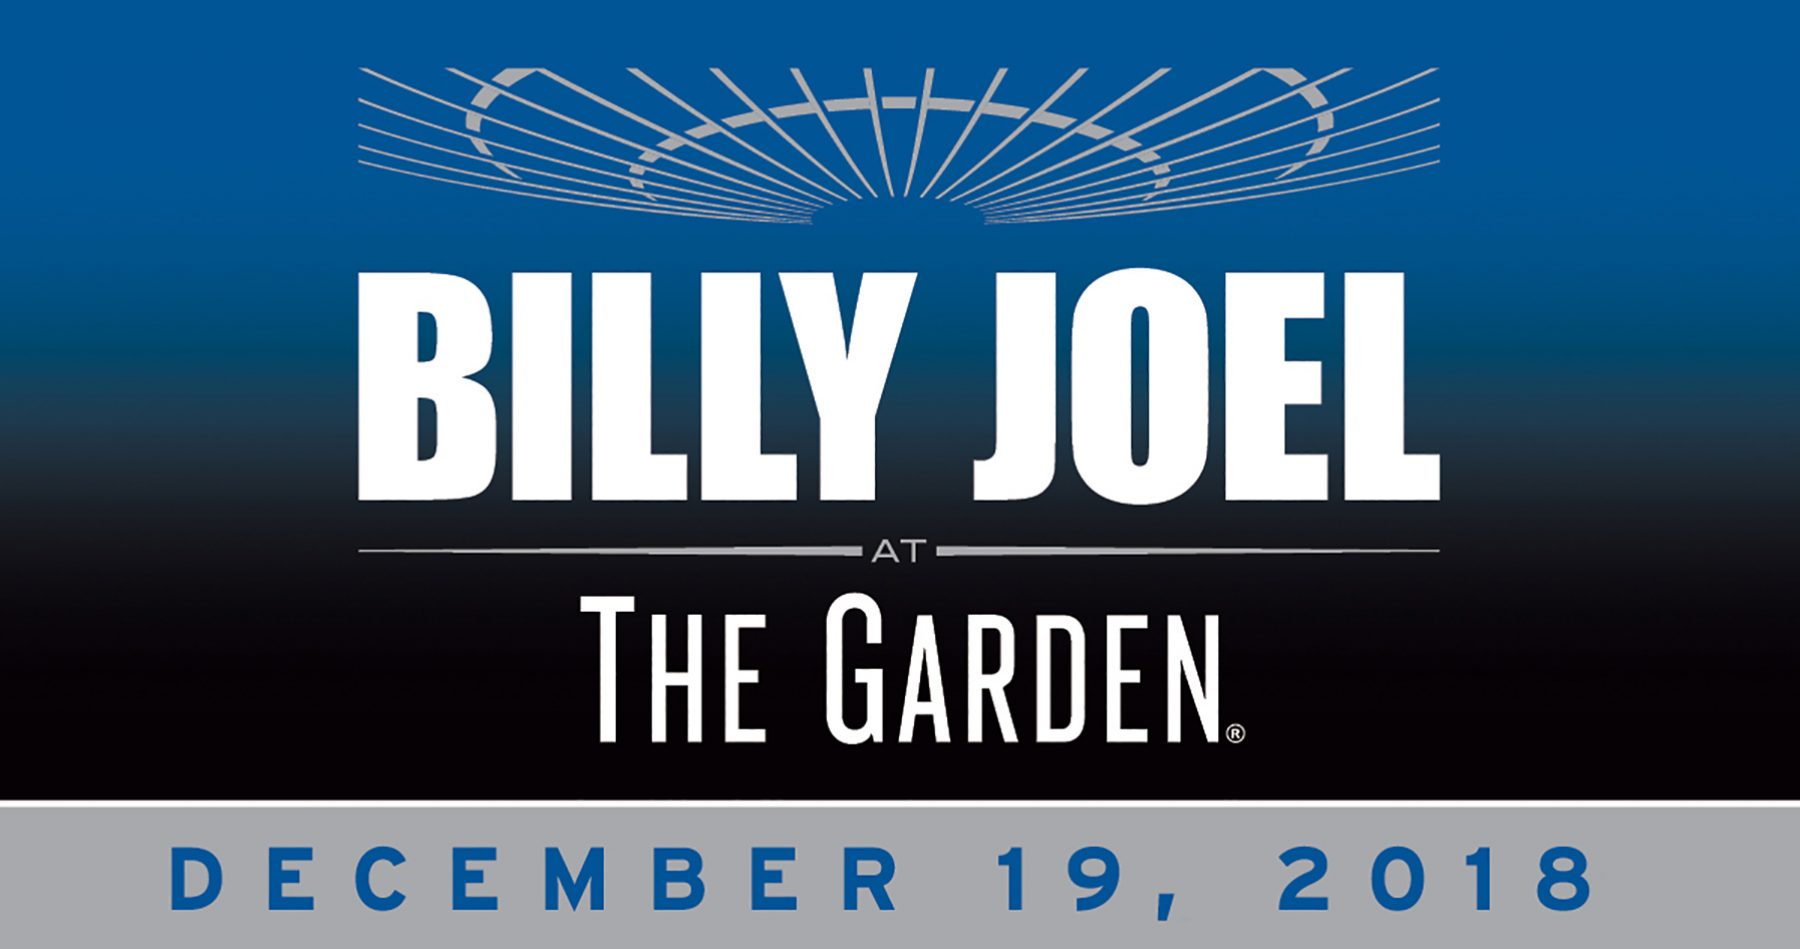 Billy Joel Madison Square Garden December 19, 2018